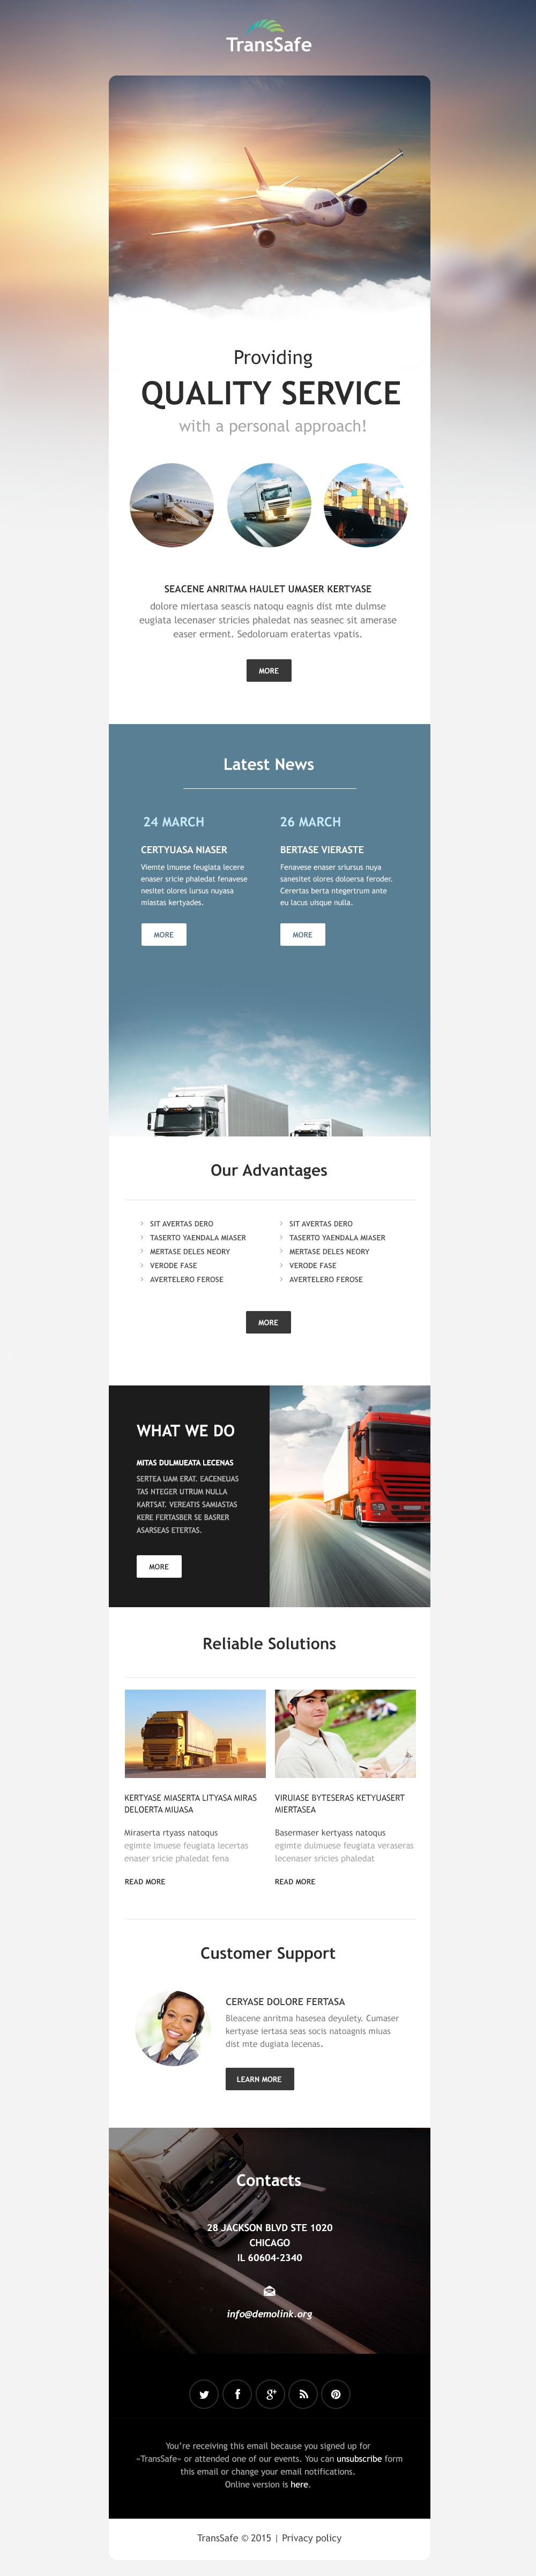 The Transsafe Transportation Company Newsletter Template Design 54616, one of the best Newsletter templates of its kind (transportation, most popular), also known as transsafe transportation company Newsletter template, transport Newsletter template, fast Newsletter template, reliability Newsletter template, safety Newsletter template, express Newsletter template, exportation Newsletter template, trucking Newsletter template, work Newsletter template, team Newsletter template, profile Newsletter template, support Newsletter template, customer Newsletter template, clients solutions Newsletter template, cars Newsletter template, cargo Newsletter template, services Newsletter template, shipment Newsletter template, rates Newsletter template, prices Newsletter template, offer Newsletter template, standards Newsletter template, vehicle Newsletter template, destination Newsletter template, trucking Newsletter template, sea Newsletter template, air Newsletter template, help and related with transsafe transportation company, transport, fast, reliability, safety, express, exportation, trucking, work, team, profile, support, customer, clients solutions, cars, cargo, services, shipment, rates, prices, offer, standards, vehicle, destination, trucking, sea, air, help, etc.